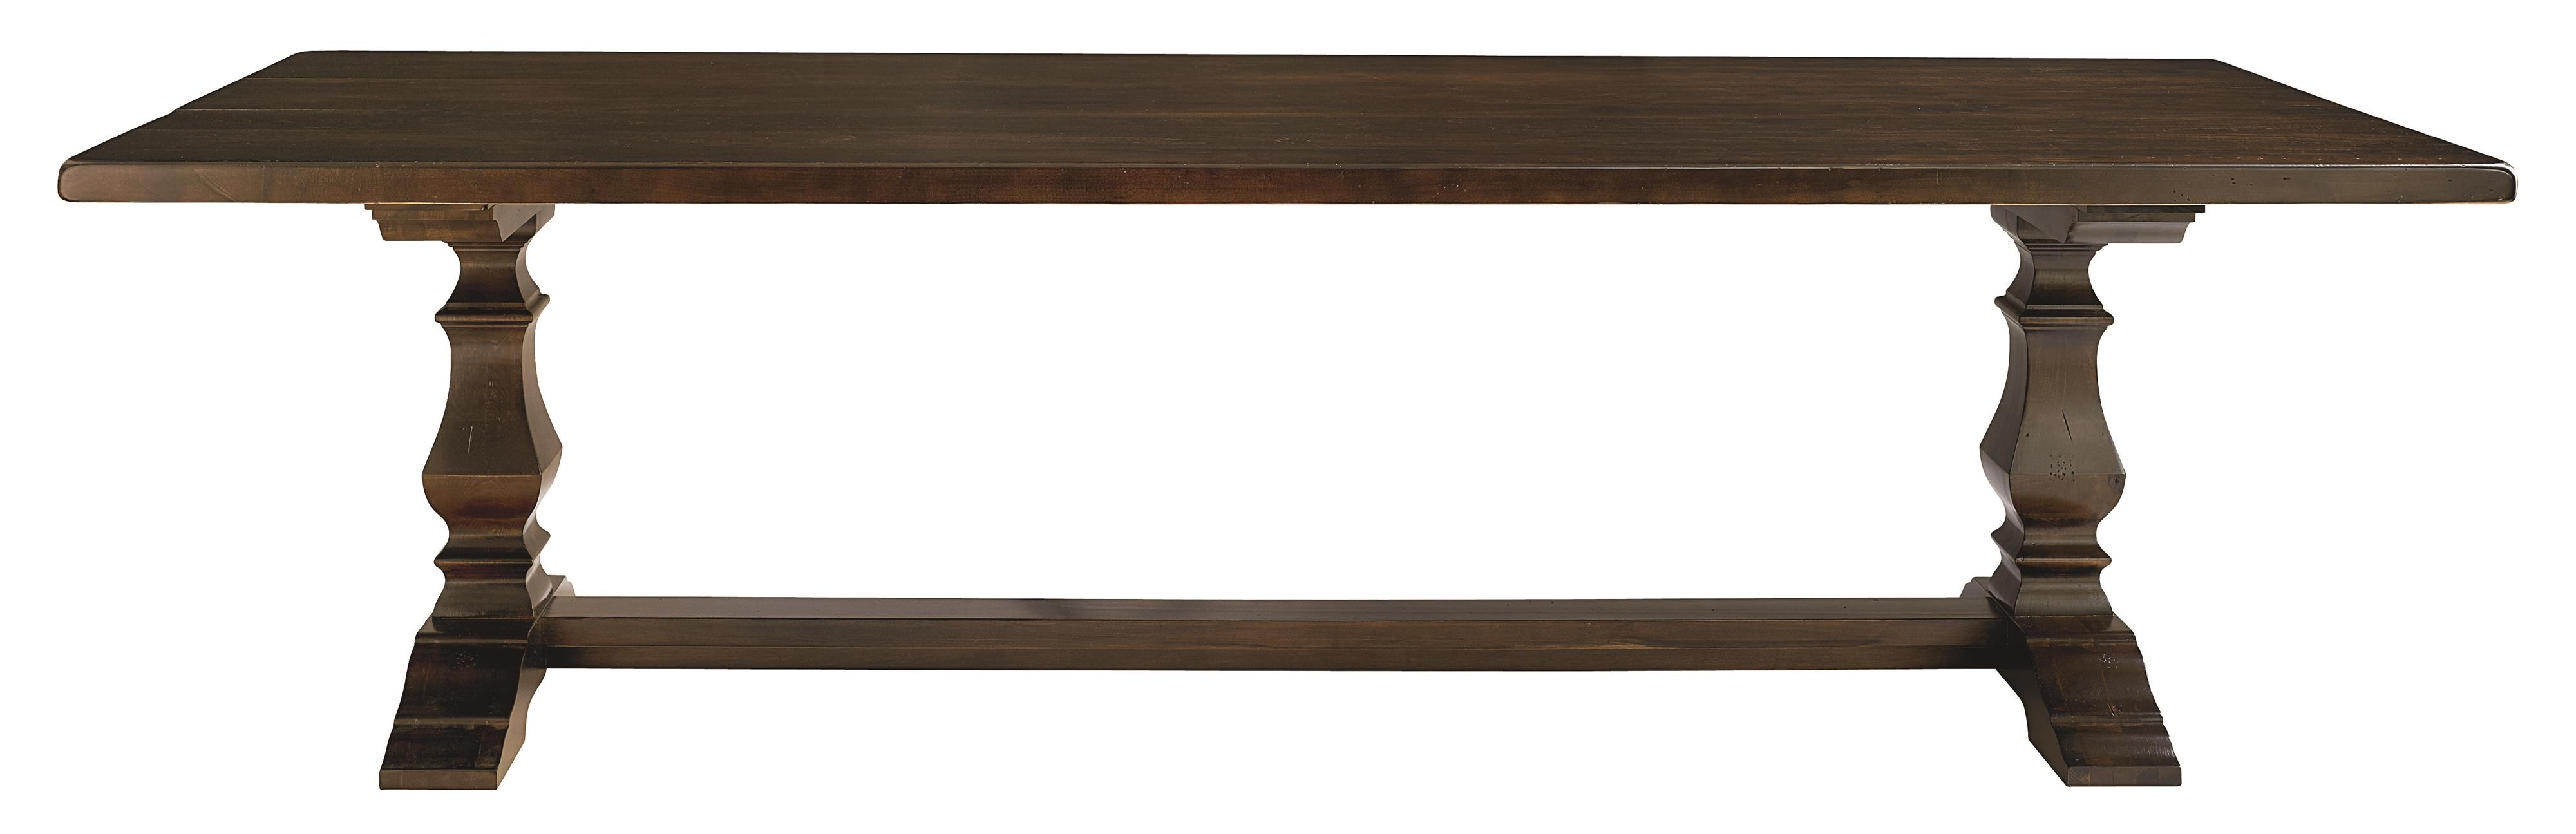 """Bench Made Maple 108"""" Rectangular Table by Bassett at Virginia Furniture Market"""